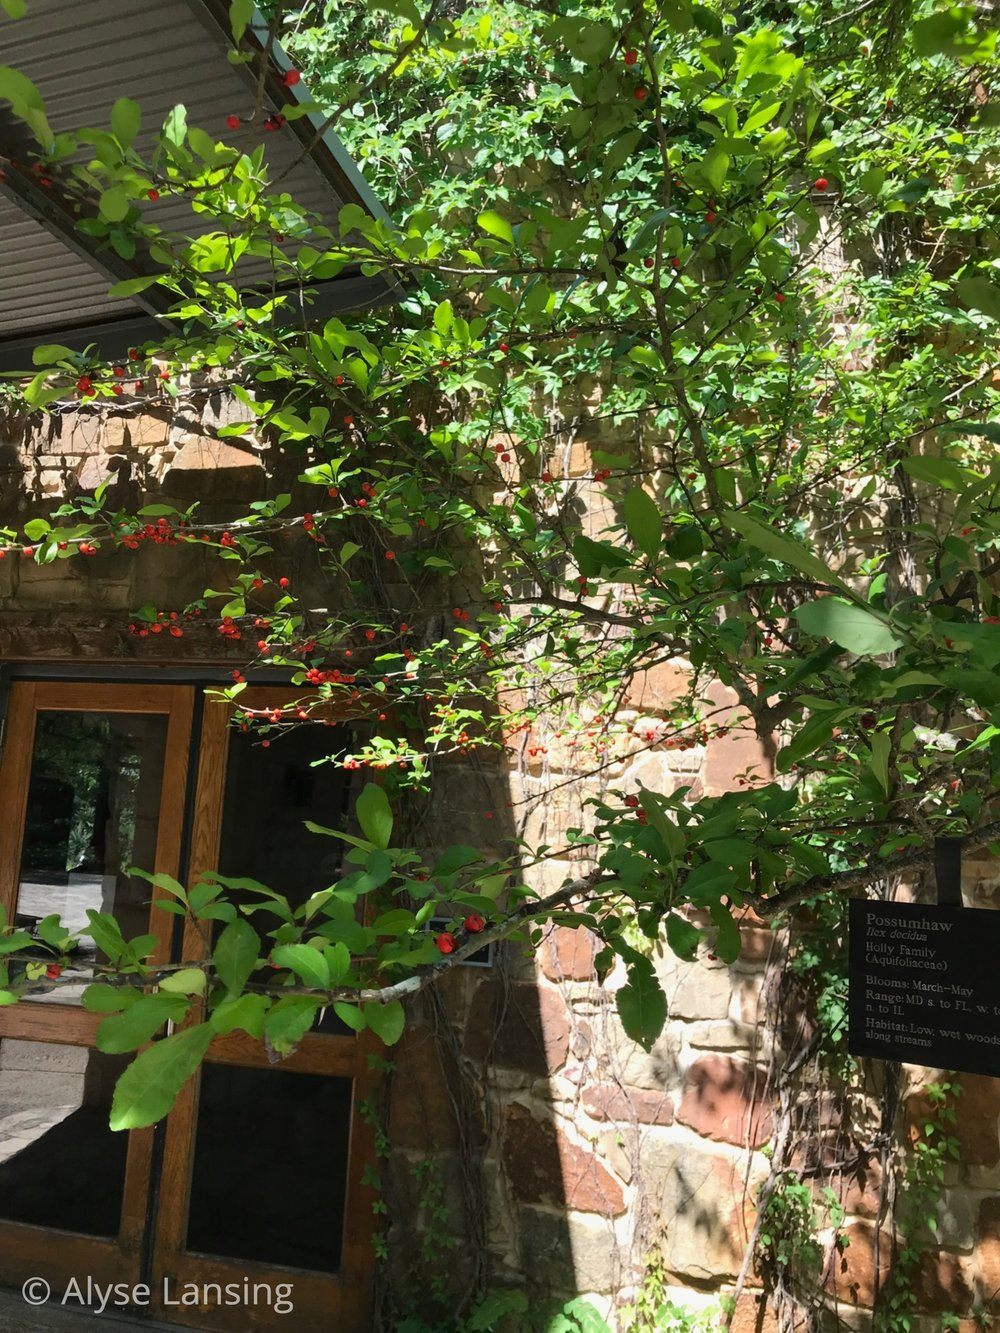 …and the berries are bright—a complement to both the leaves and the warm rocks of the building here.